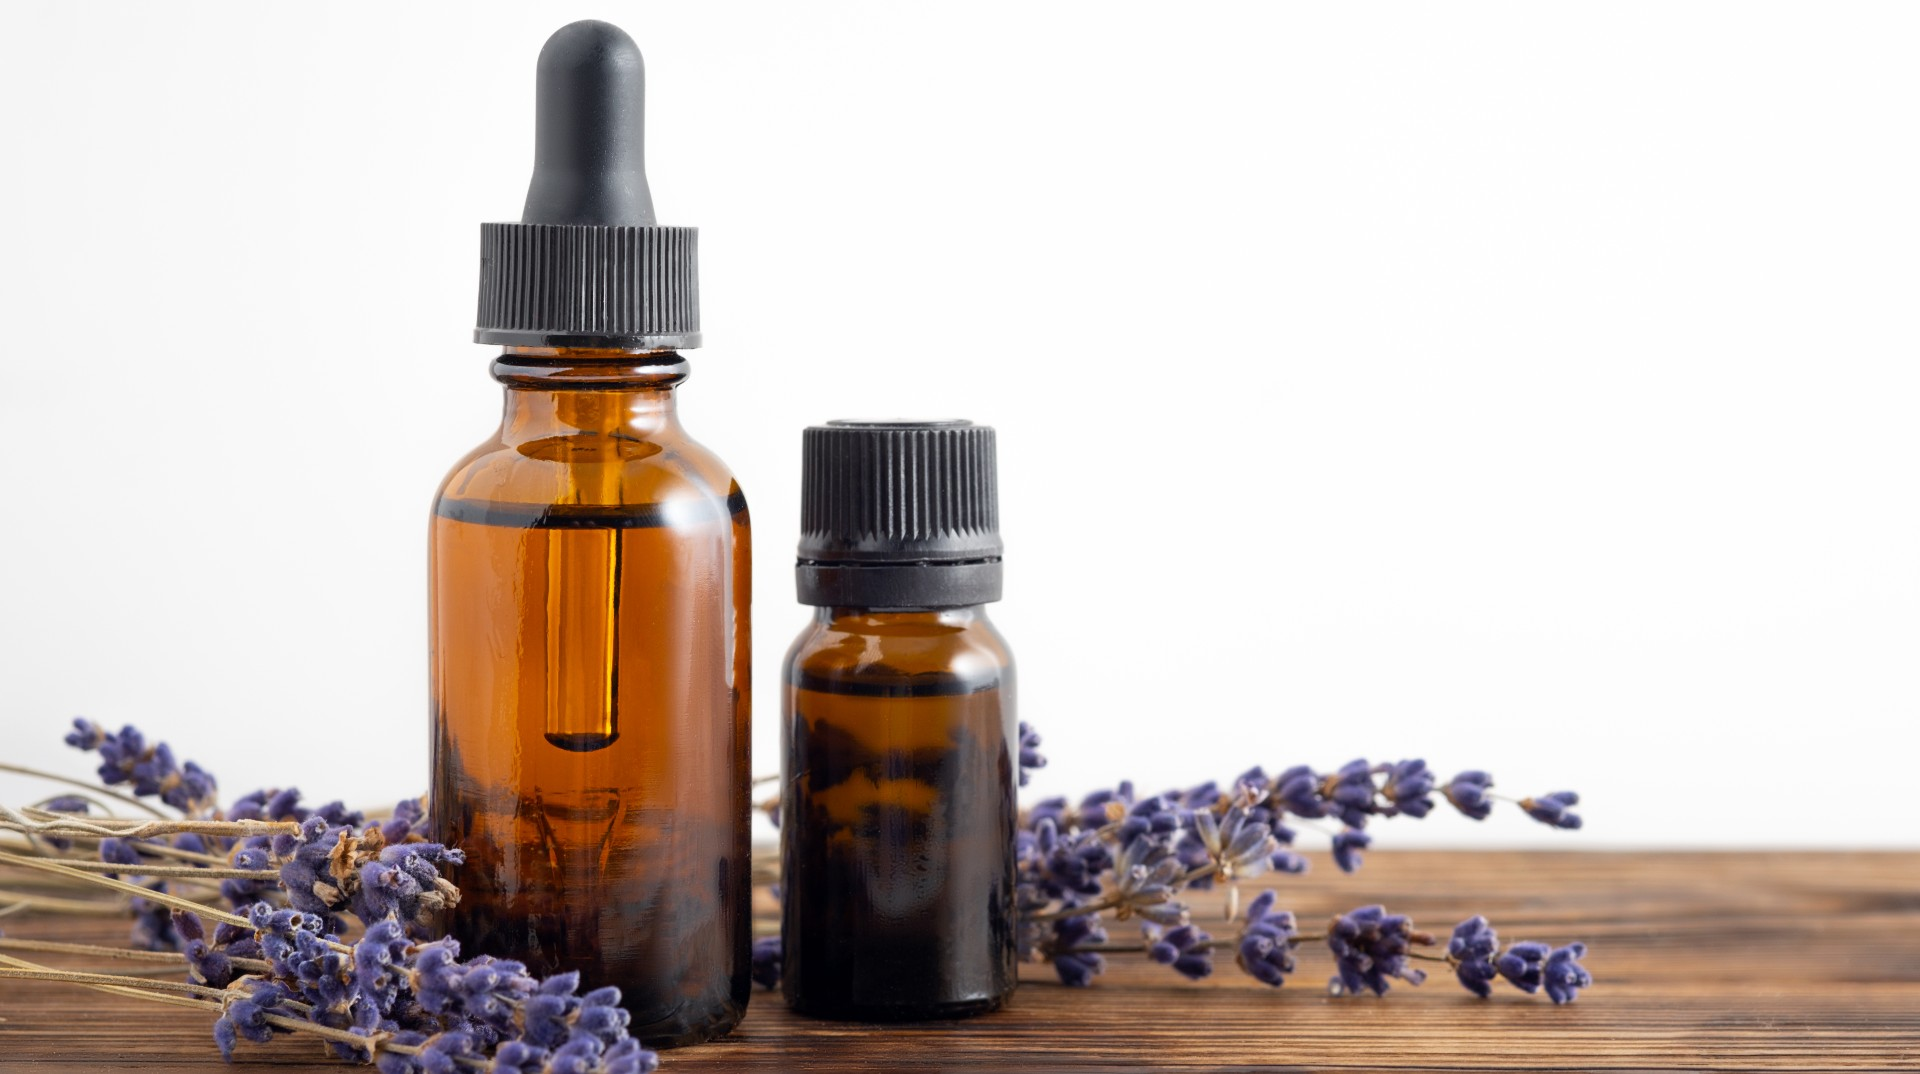 Essential oil bottles with lavender